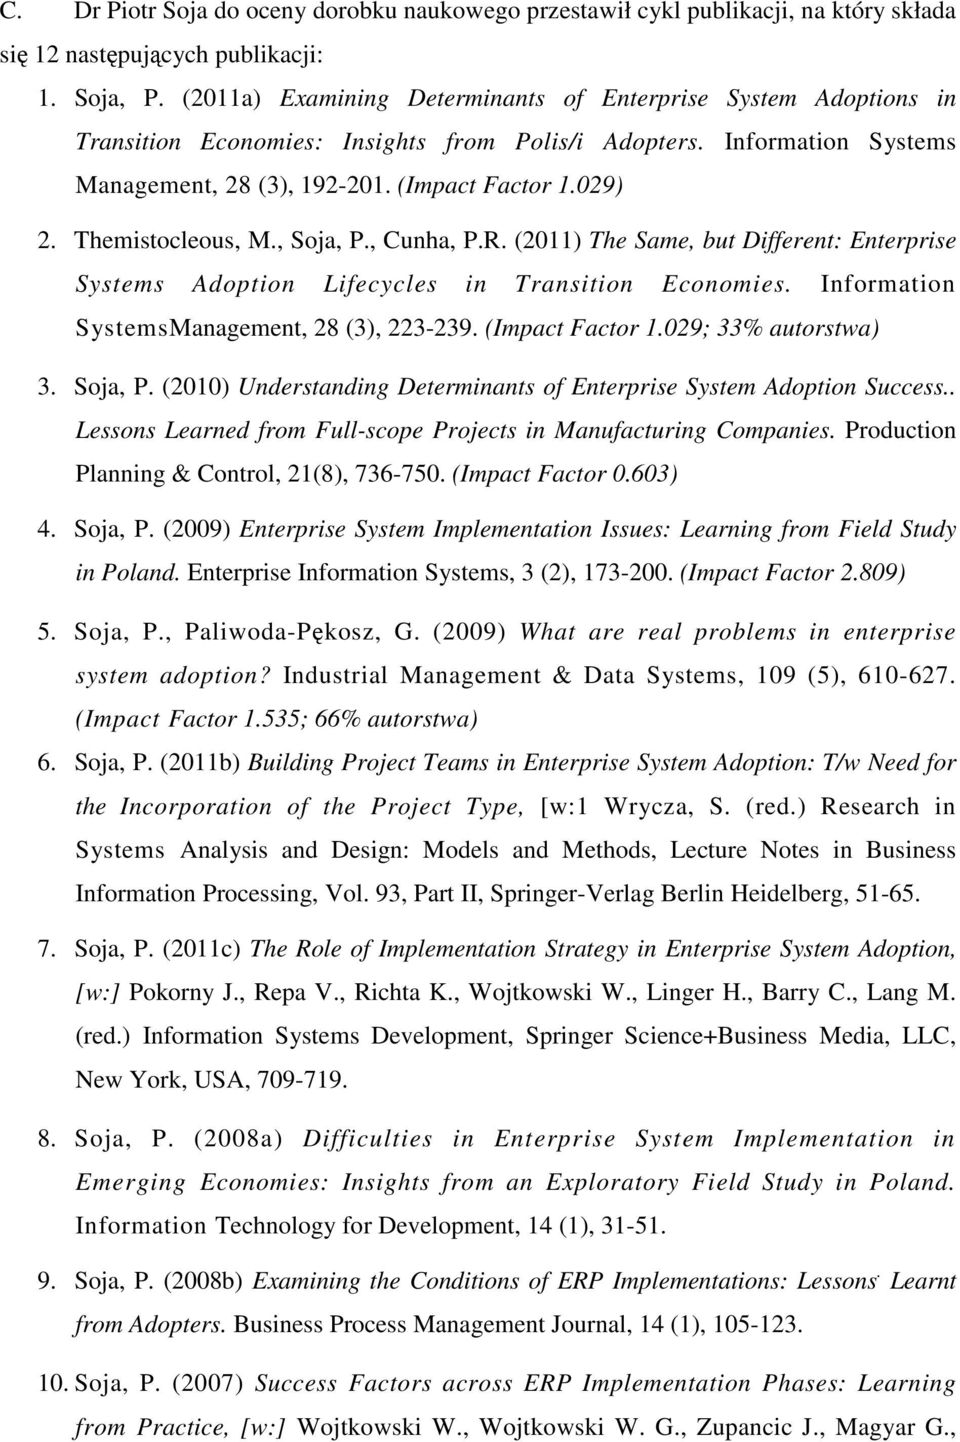 Themistocleous, M., Soja, P., Cunha, P.R. (2011) The Same, but Different: Enterprise Systems Adoption Lifecycles in Transition Economies. Information SystemsManagement, 28 (3), 223-239.